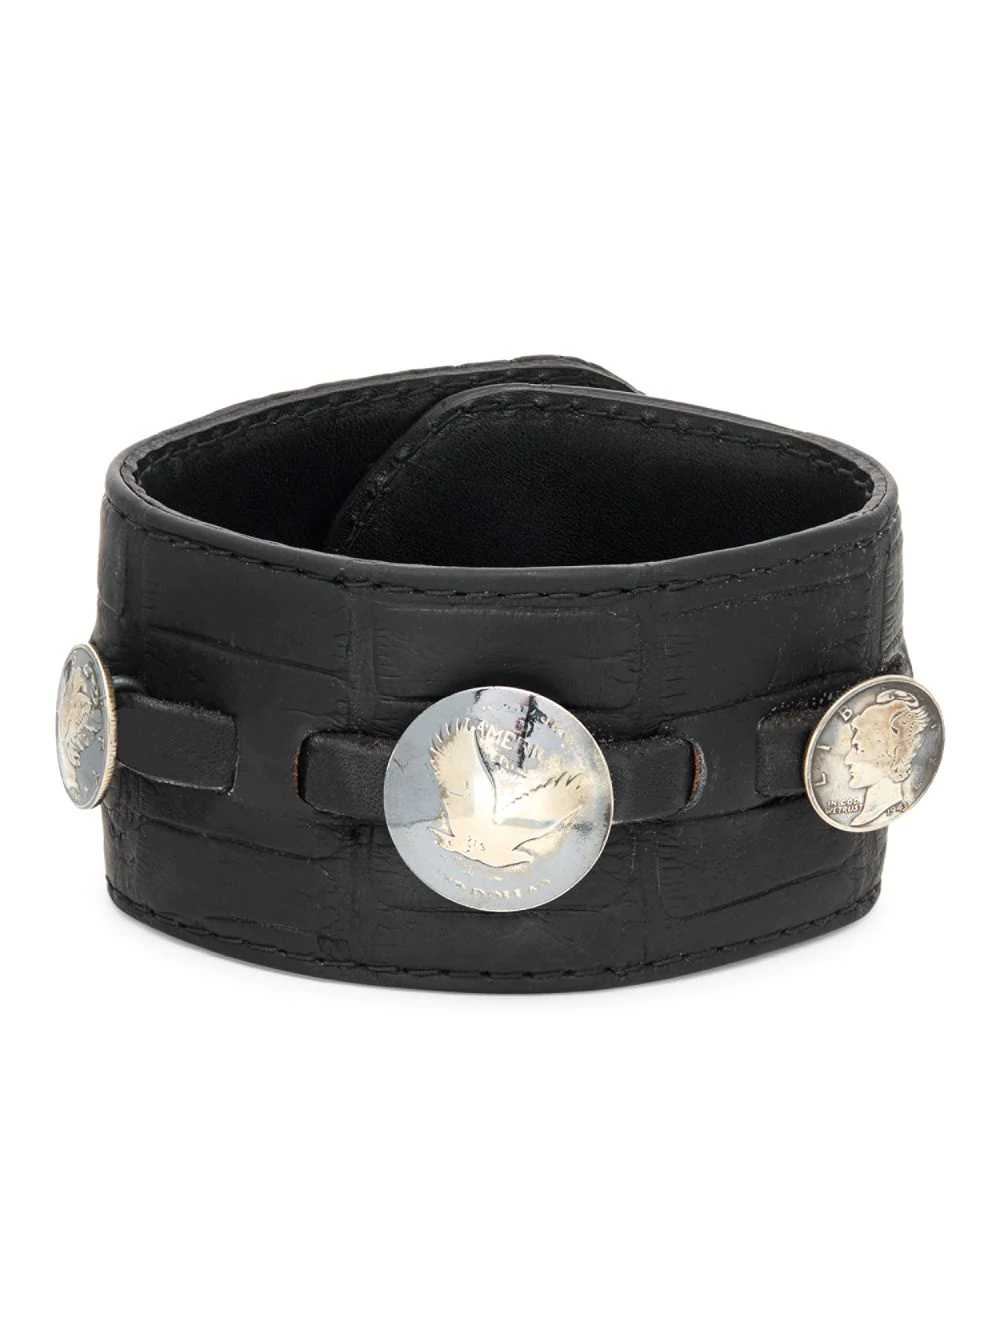 Leather & Coin Cuff Bracelet